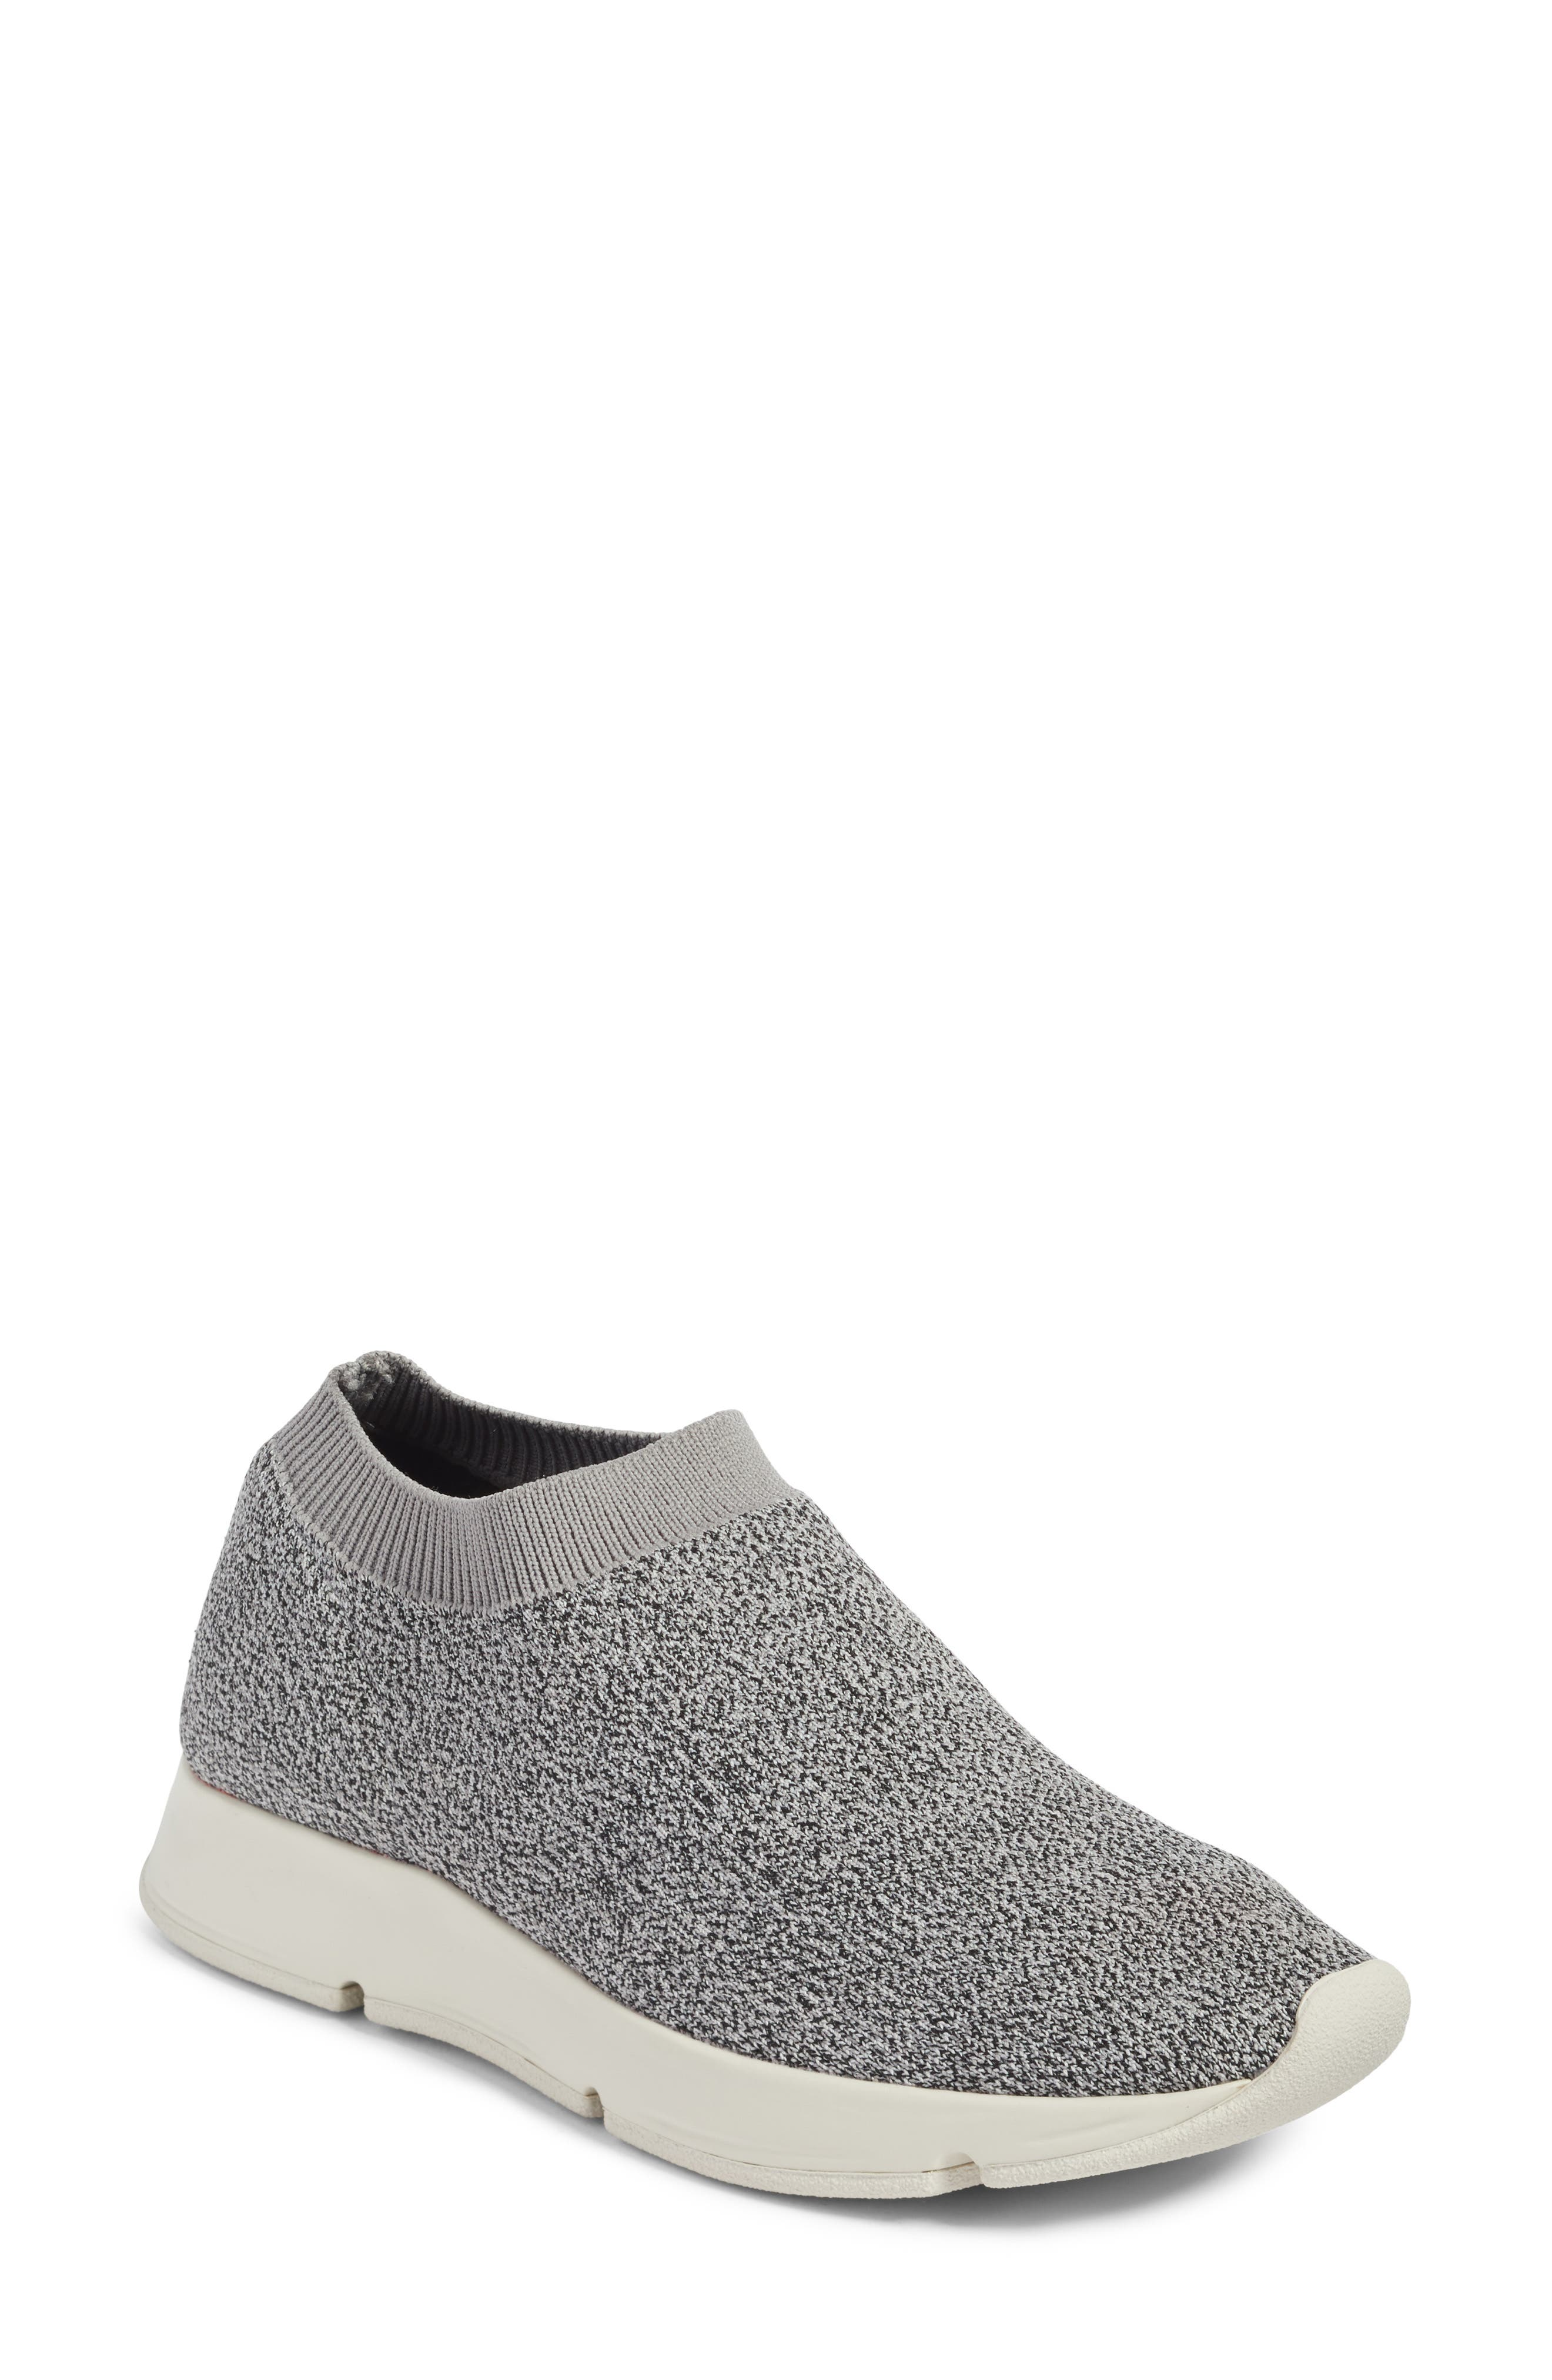 Theroux Slip-On Knit Sneaker,                             Main thumbnail 2, color,